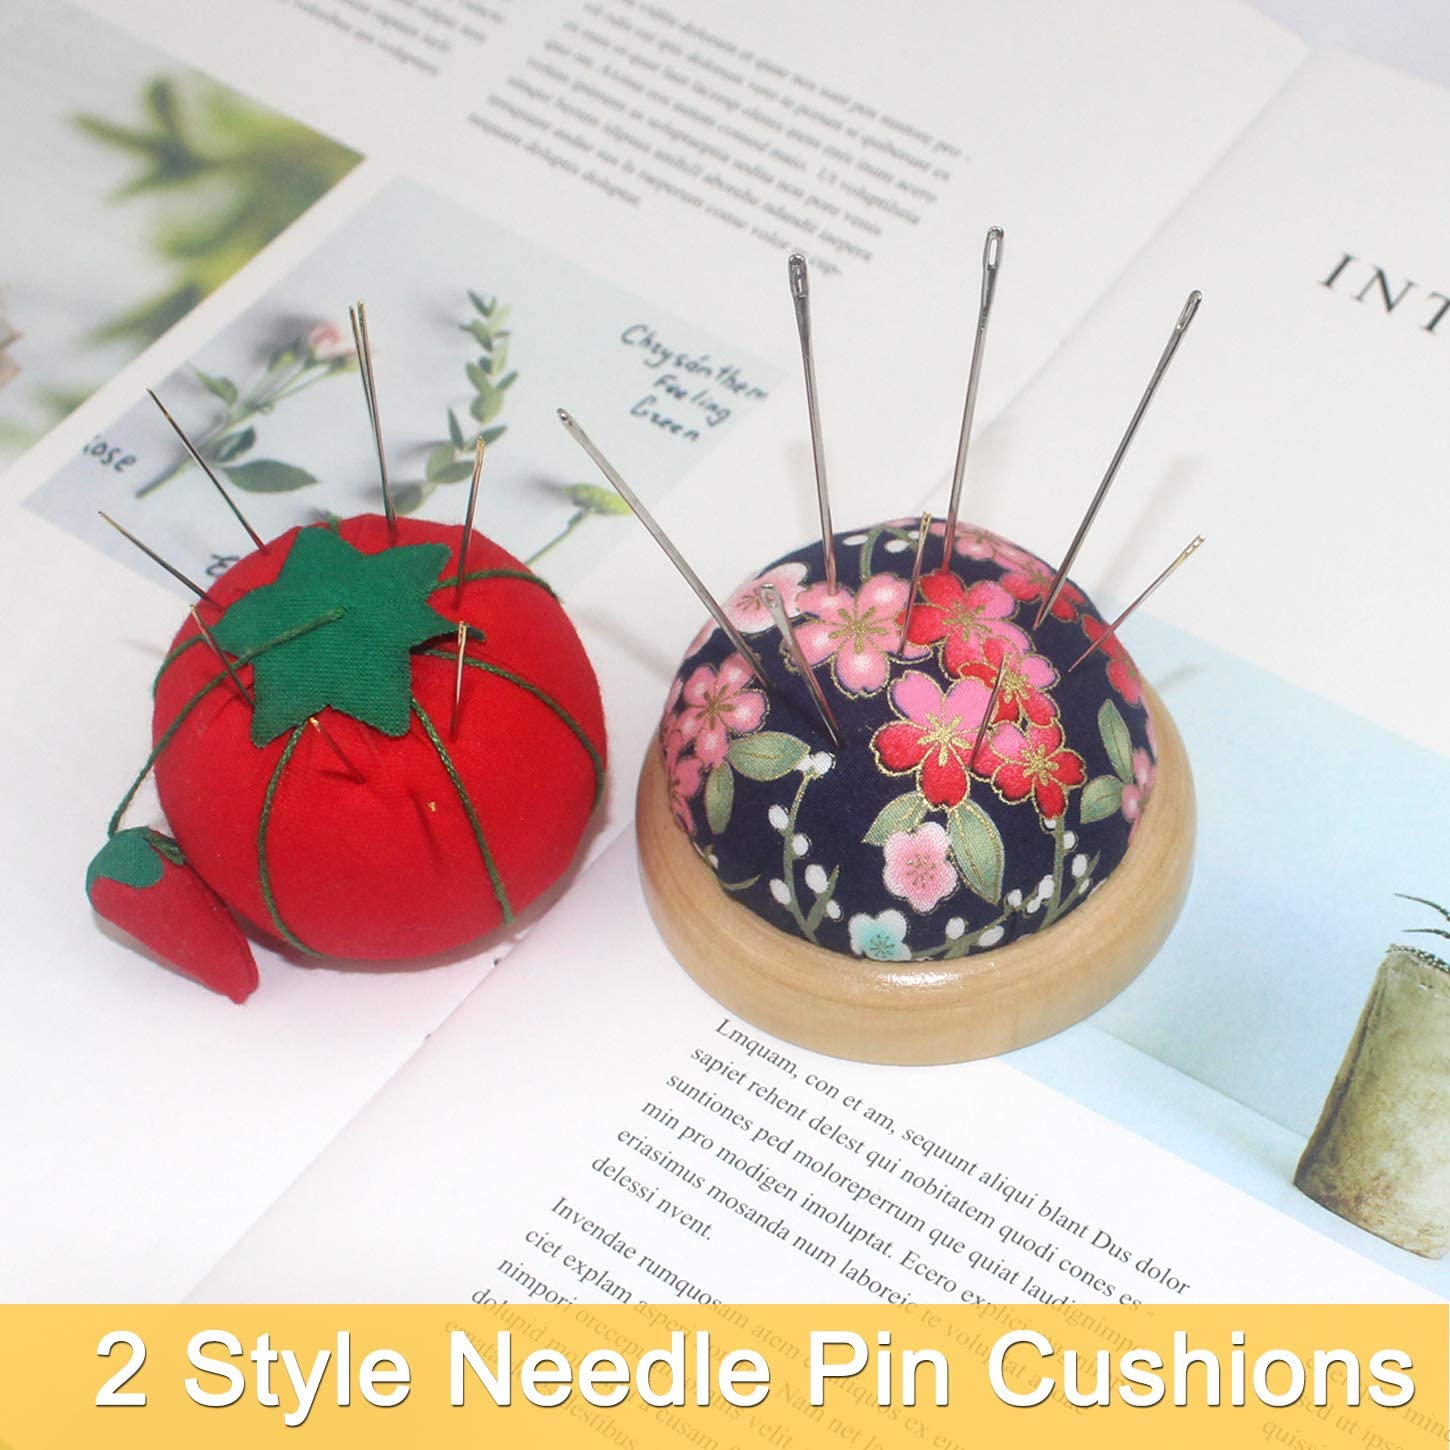 Chistepper 2 Pieces Needle Pin Cushions Wooden Base Tomato Shape Pincushions Needle Pincushions for Sewing or DIY Crafts